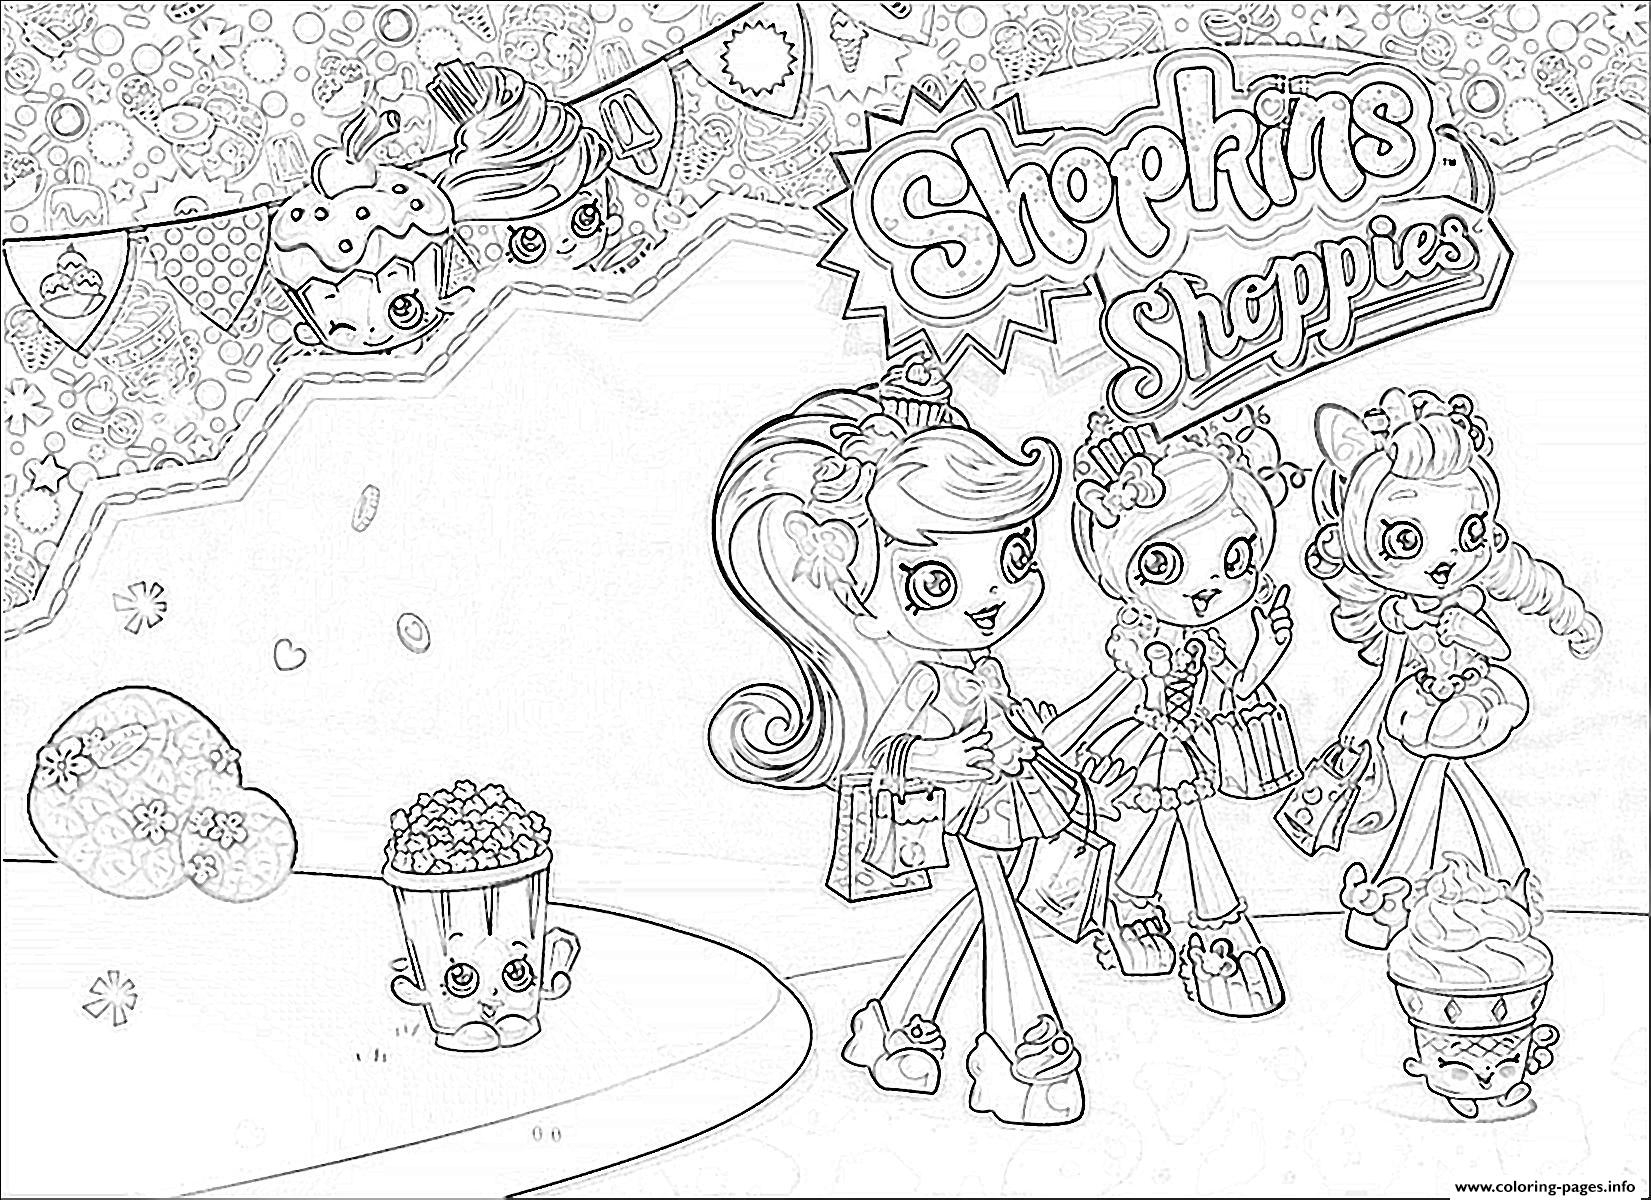 21 Shoppies Coloring Pages Printable | FREE COLORING PAGES - Part 2